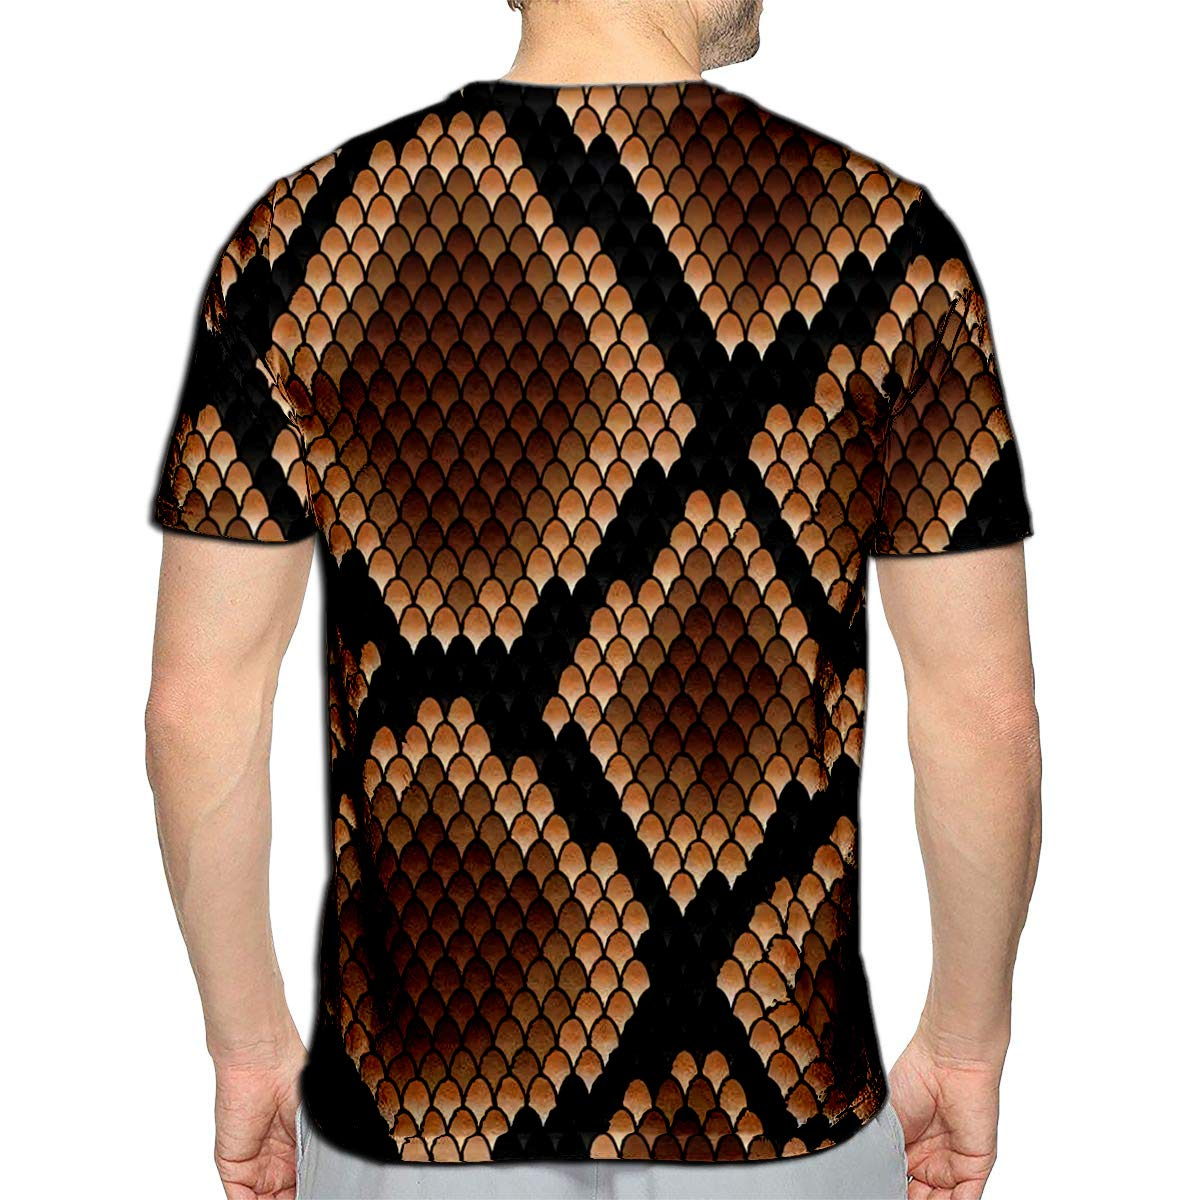 3D Printed T-Shirts Brown Snake Patternfor Or Fashion Design Short Sleeve Tops T